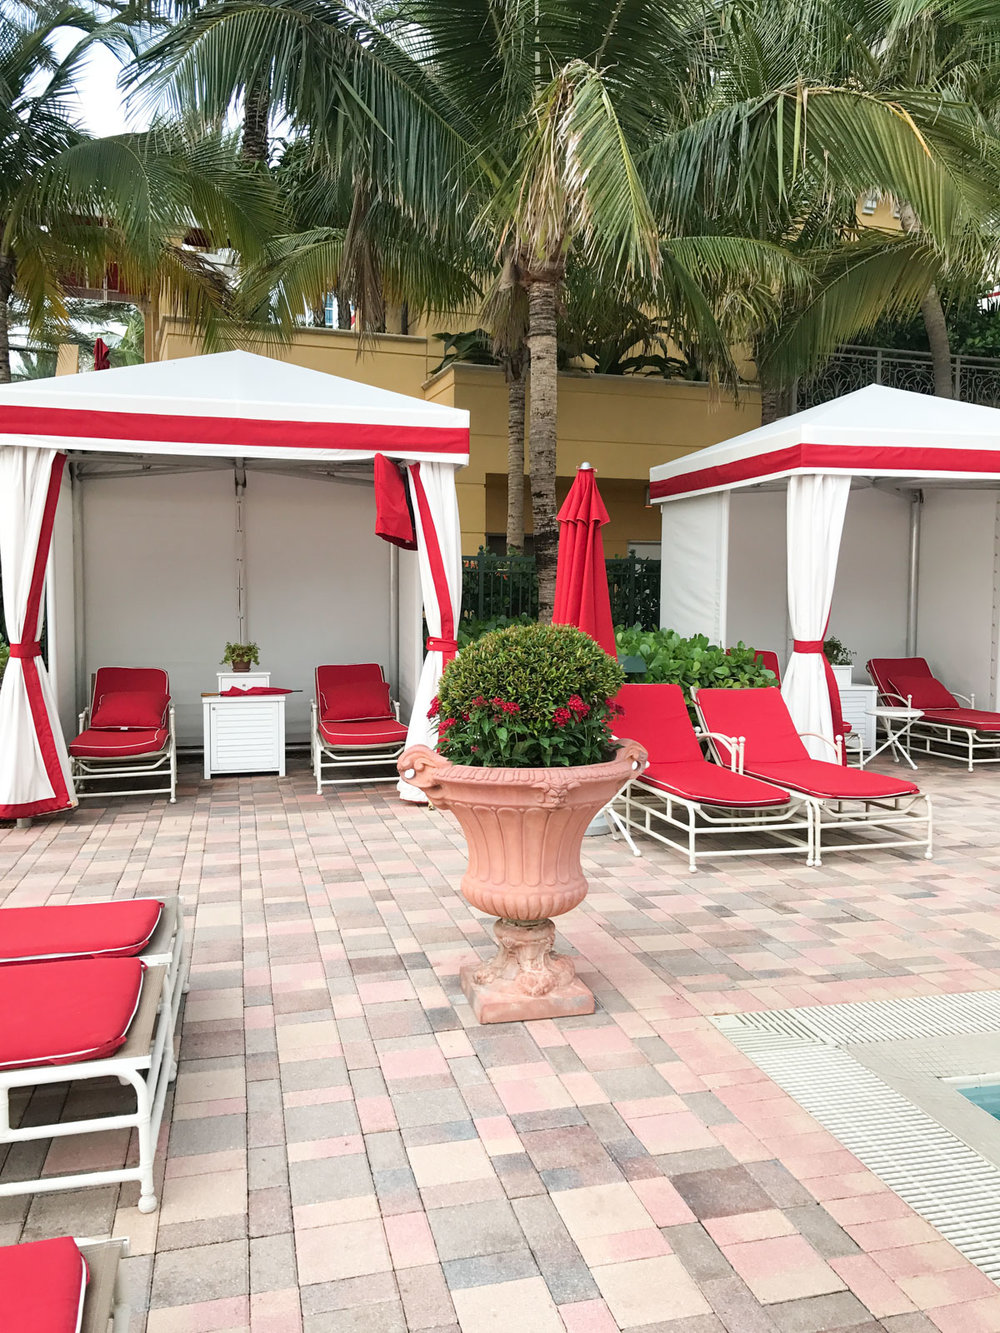 Acqualina Resort Reviews_AddieBell_Best_US_Getaway-8528.jpg